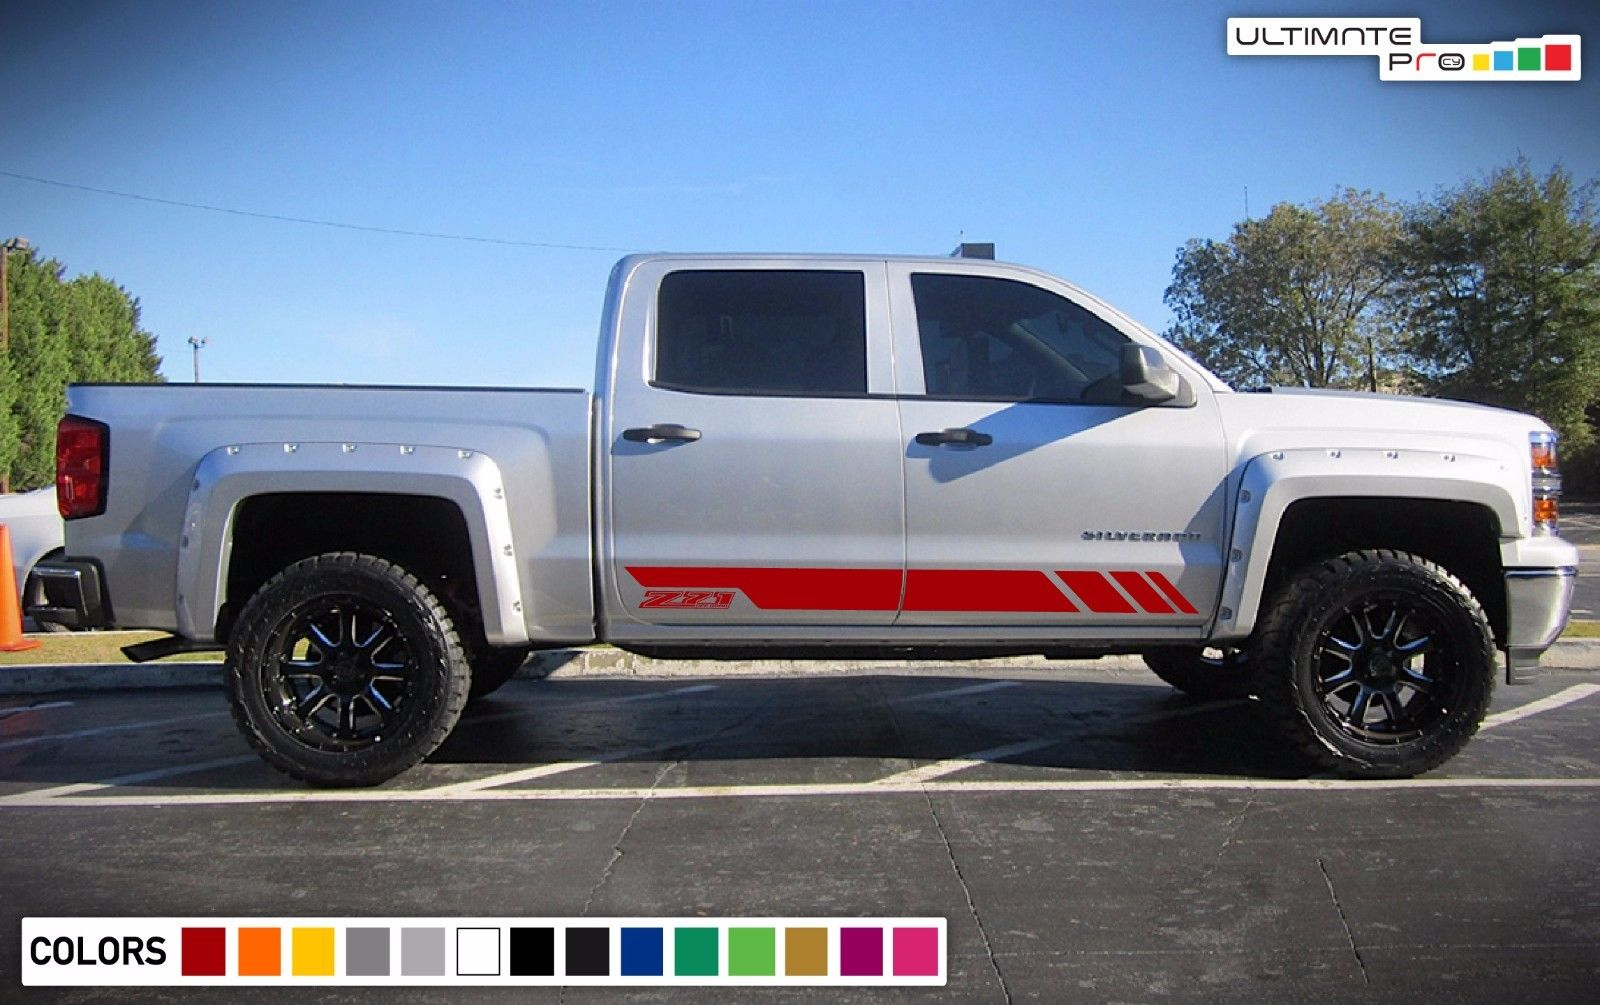 Decal Sticker Vinyl Door Stripes For Chevrolet Silverado